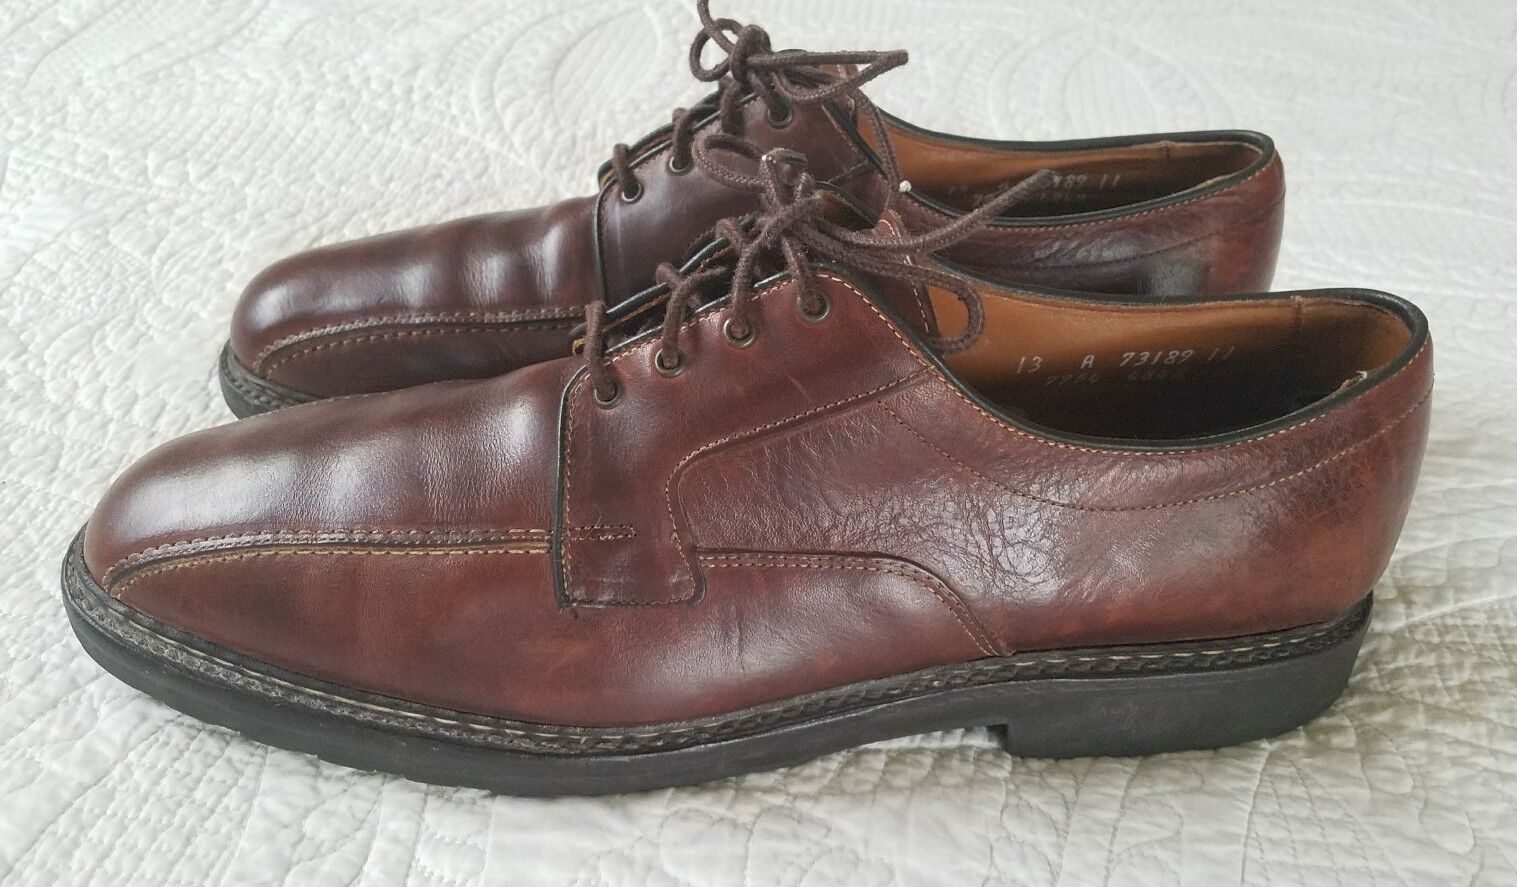 6fadefd7c41 ALLEN EDMONDS Mapleton Leather Oxford Dress shoes Men s Size 13 R  nrsnsa3130-Dress Shoes